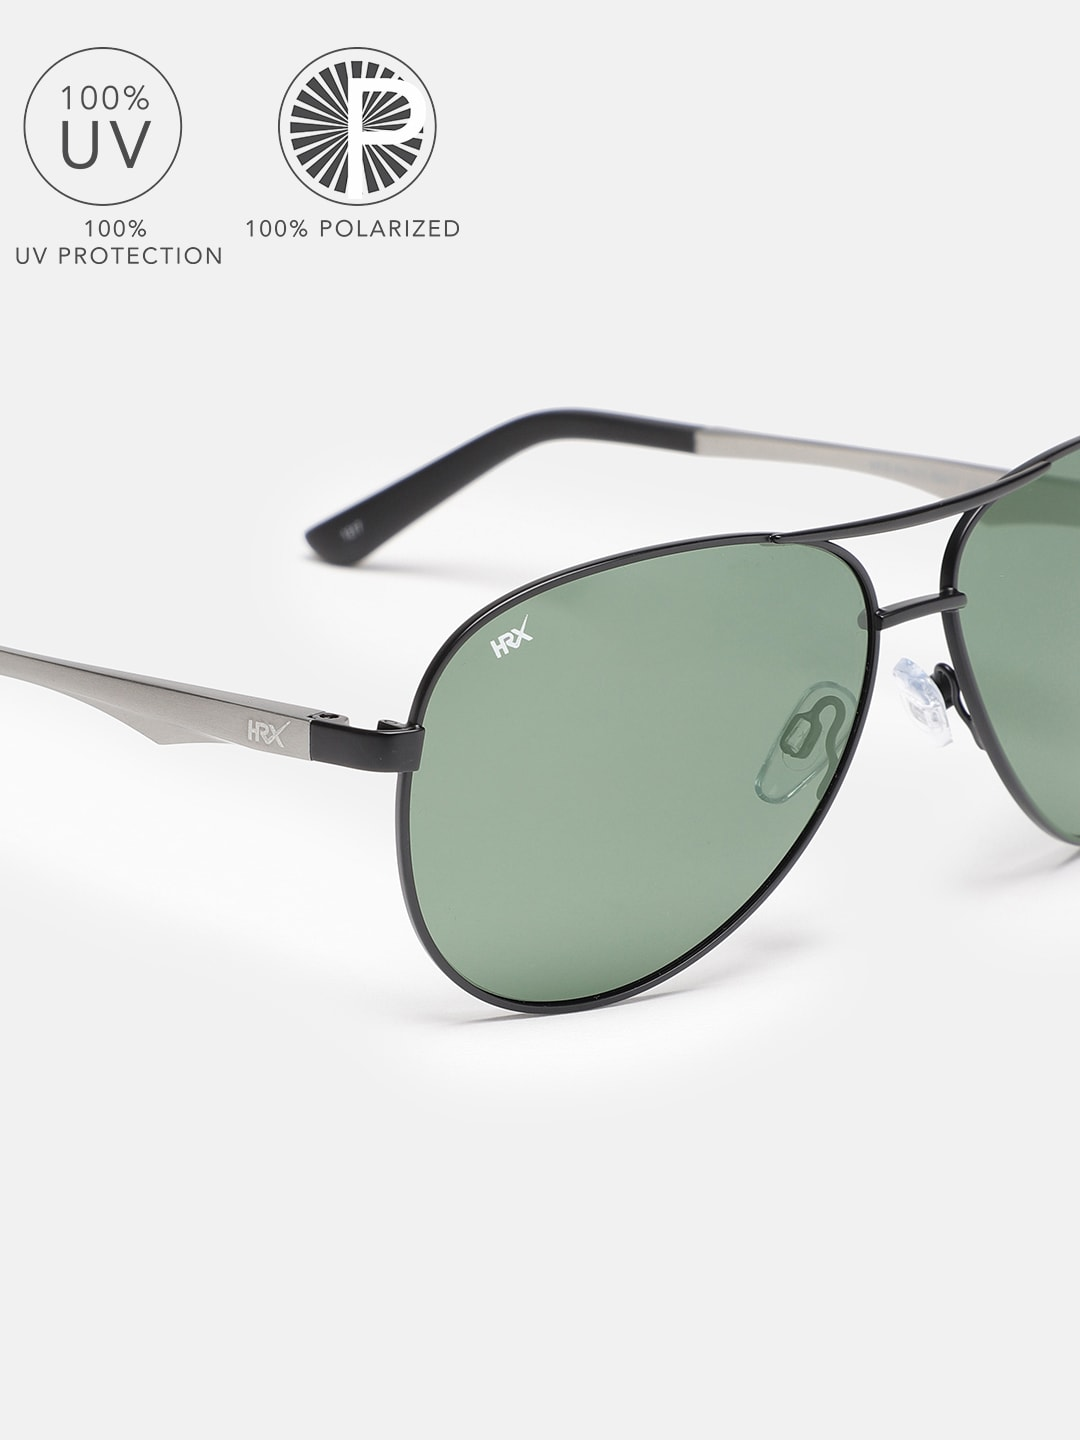 c91585013a UV Protected Sunglasses - Buy UV Sunglass Online in India